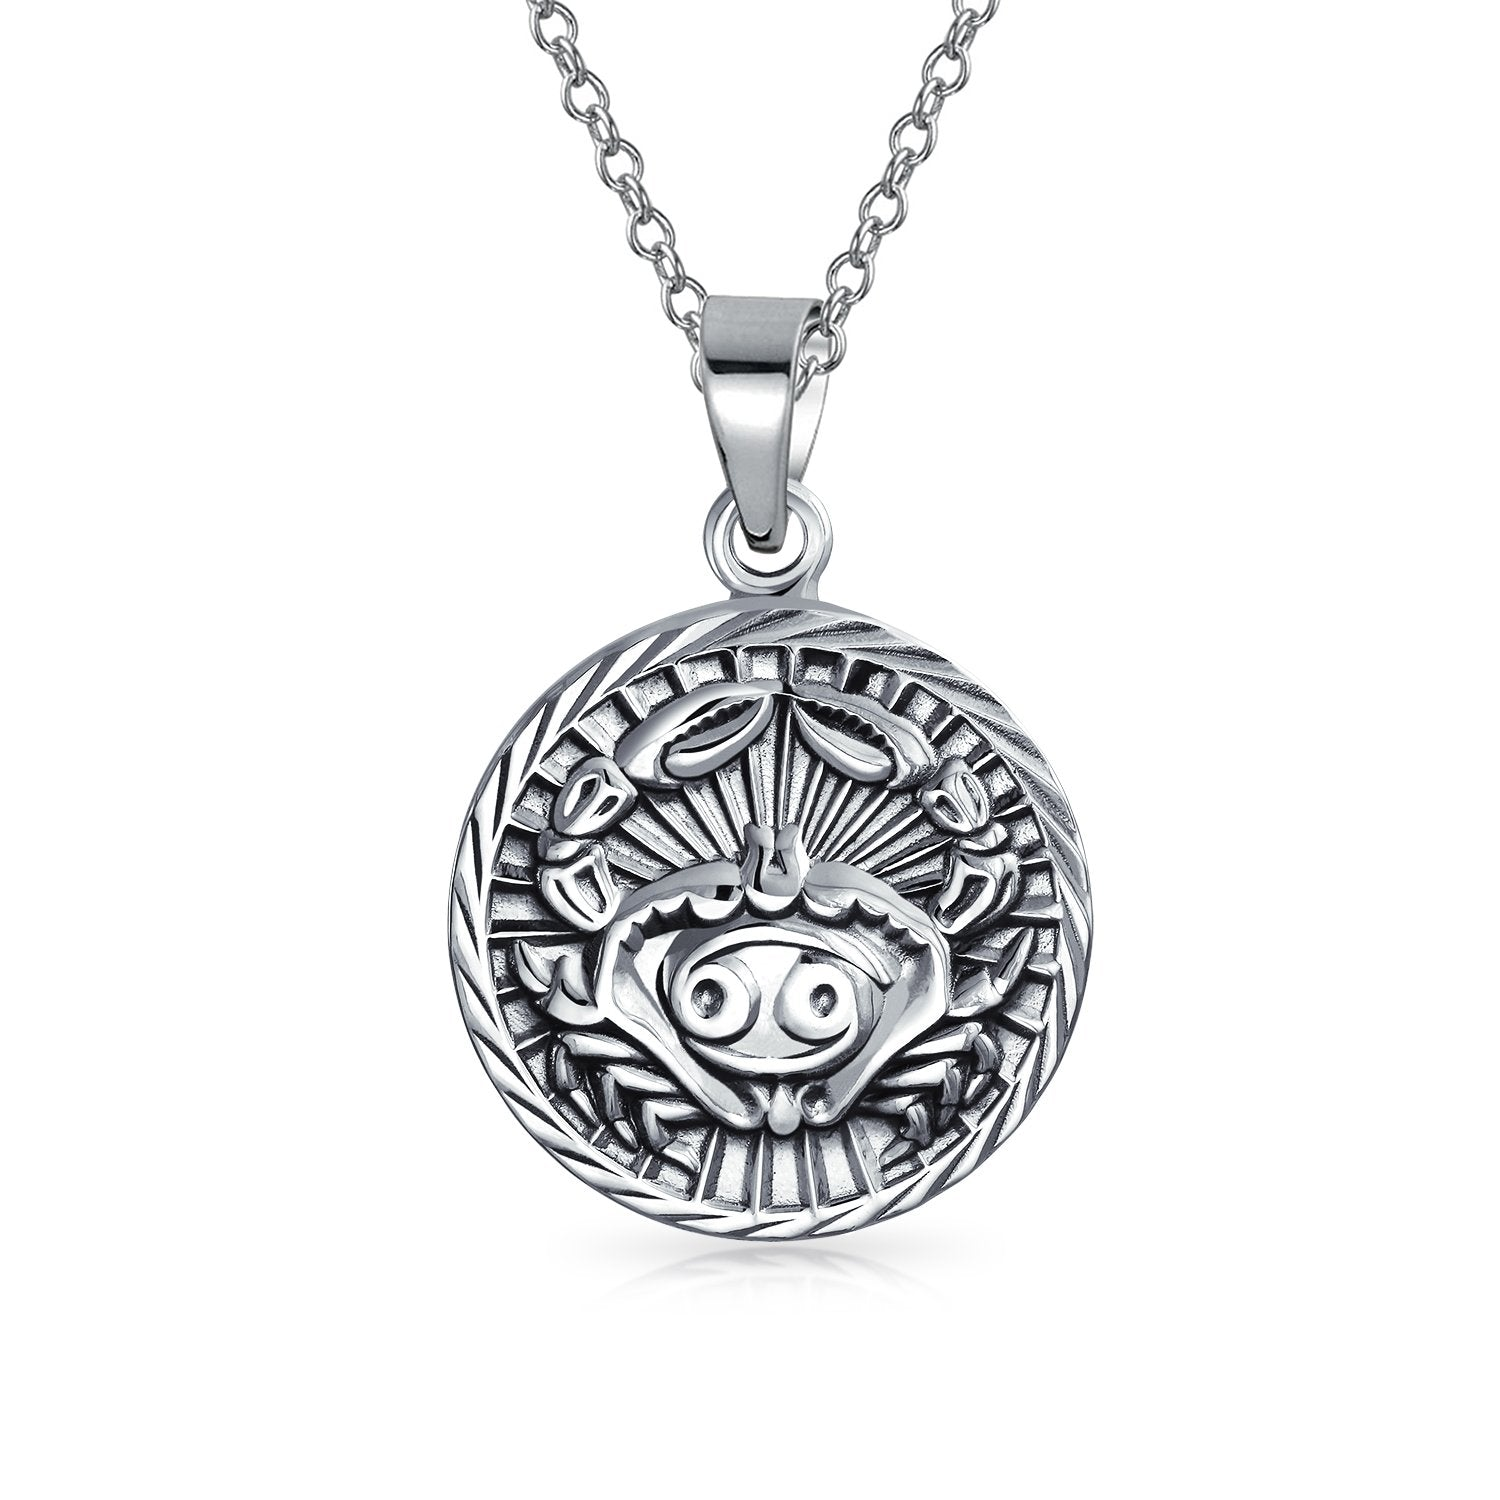 Zodiac Sign Astrology Horoscope Round Medallion Antiqued Sterling Silver Pendant For Men Women Necklace